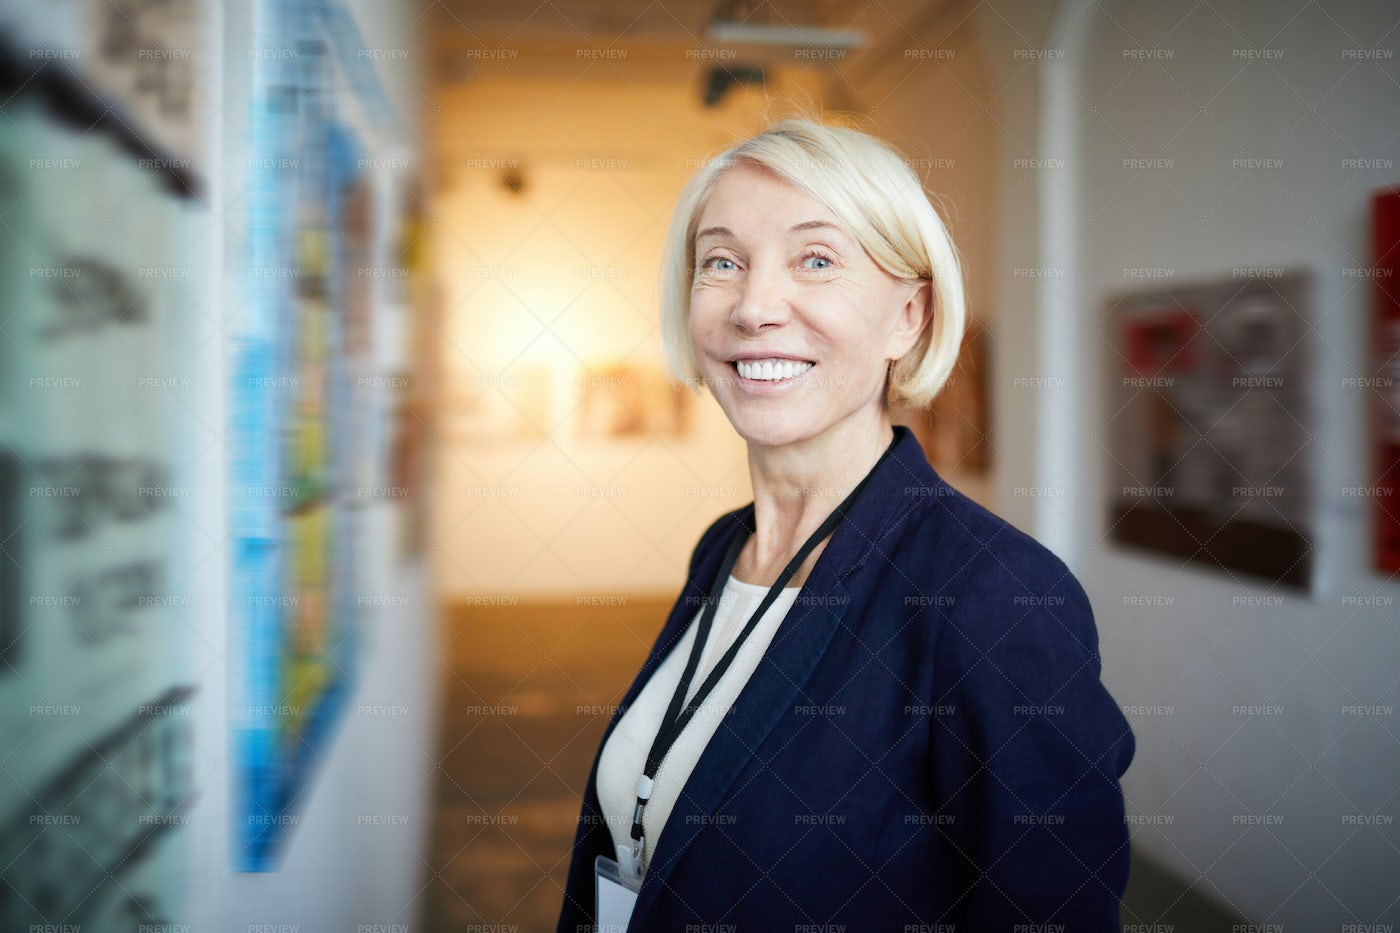 Smiling Woman In Art Gallery: Stock Photos